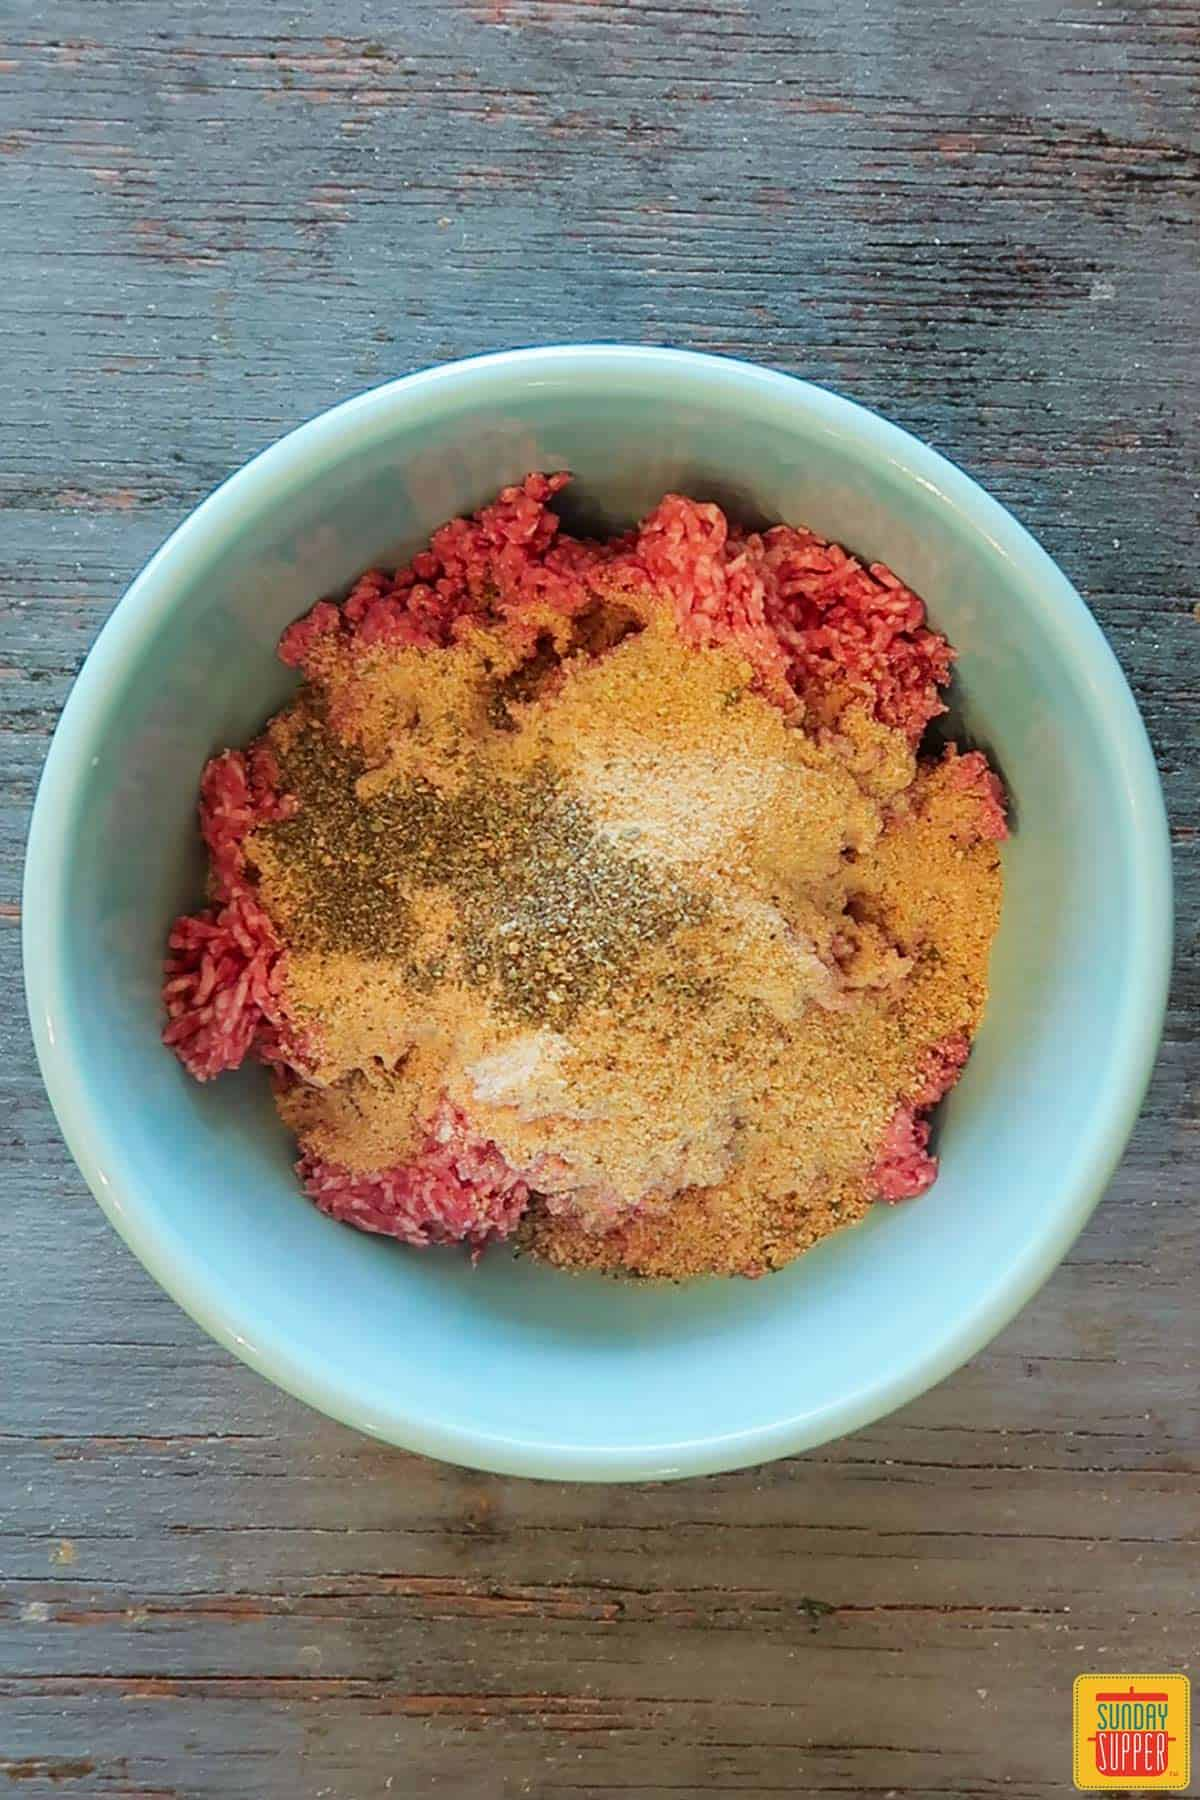 Dry spices on top of meatball mixture in bowl